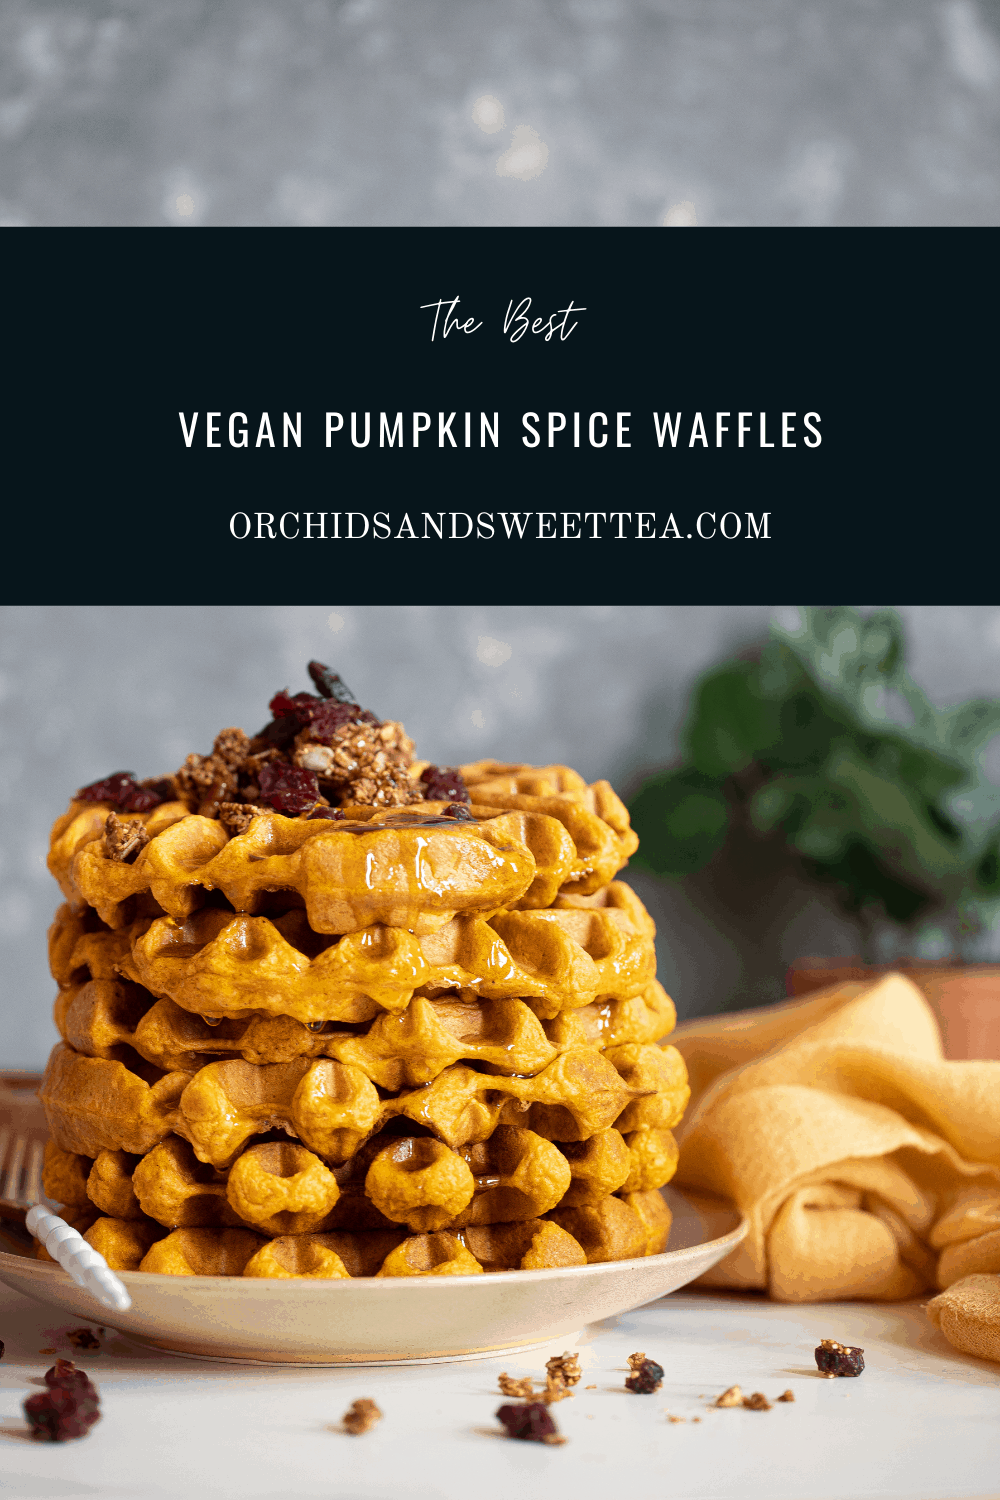 The Best Vegan Pumpkin Spice Waffles